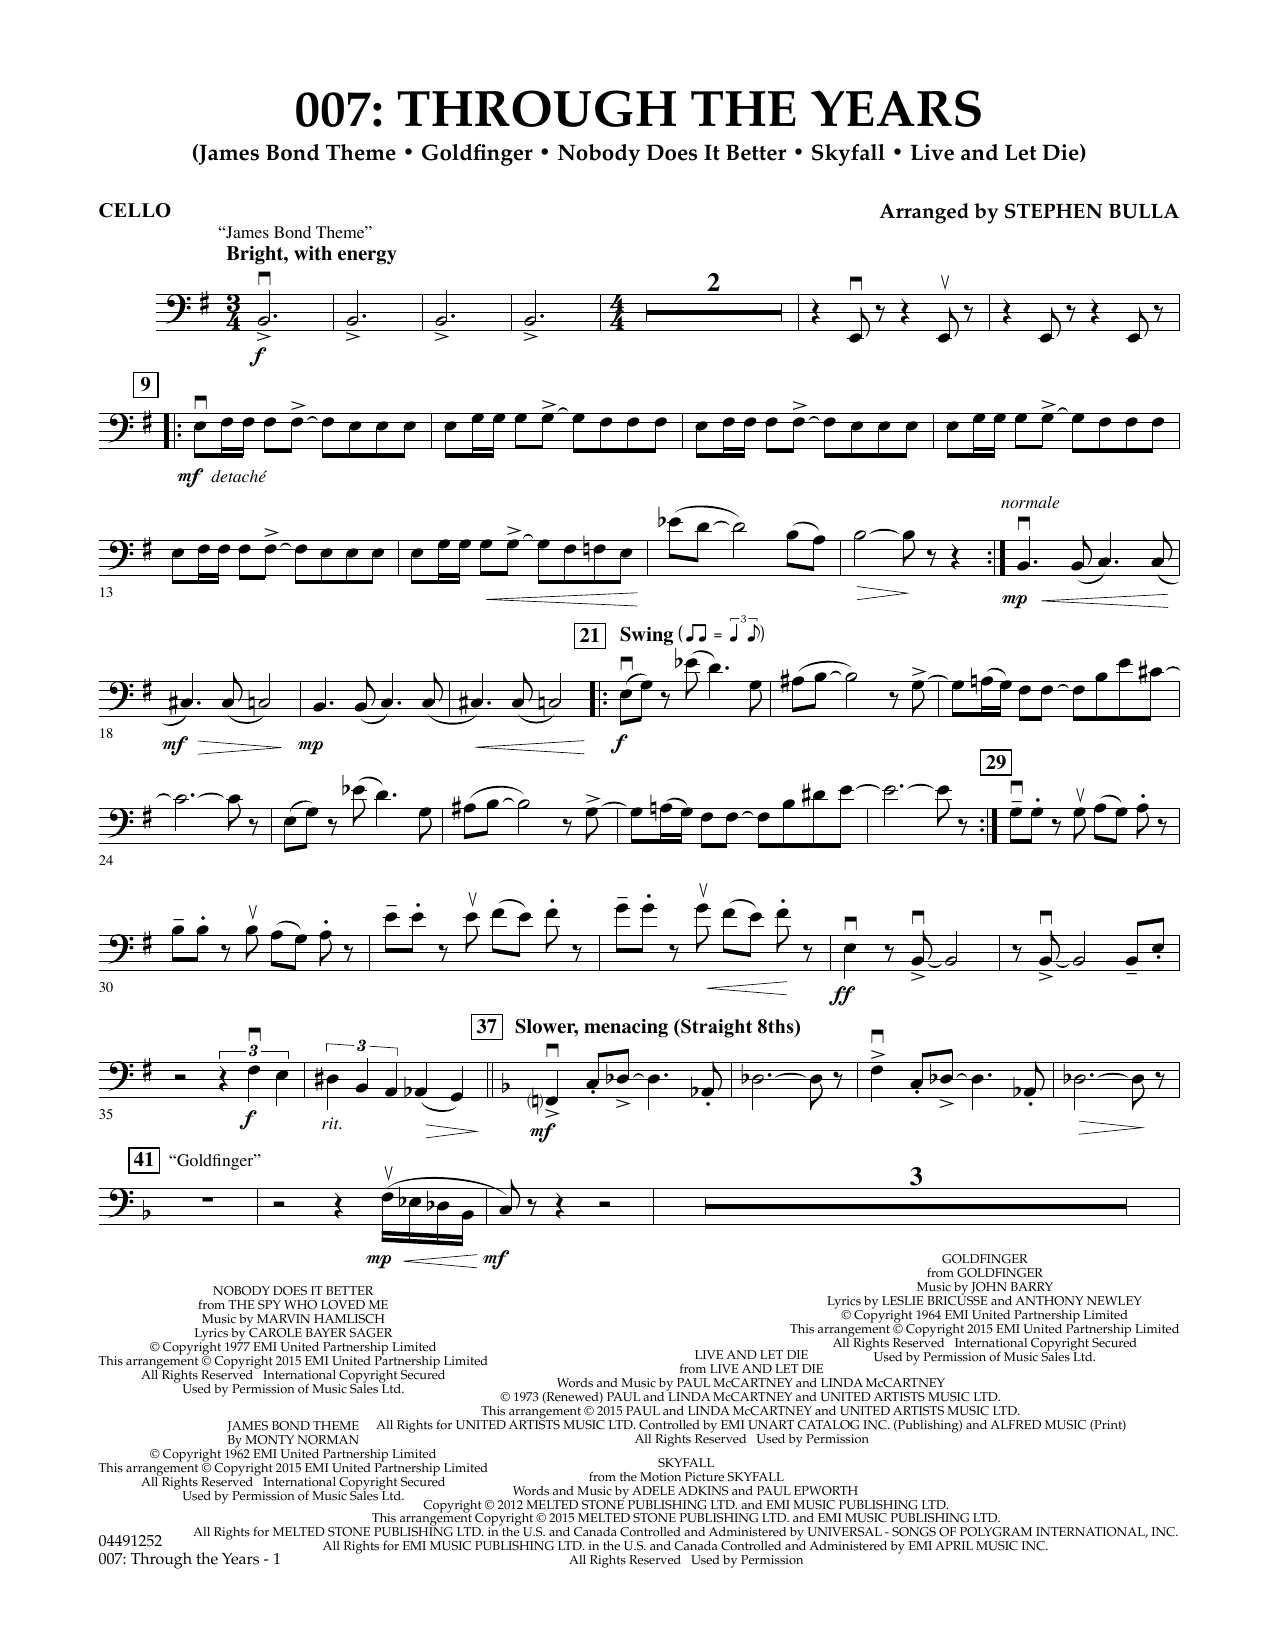 Stephen Bulla 007: Through The Years - Cello sheet music preview music notes and score for Orchestra including 3 page(s)